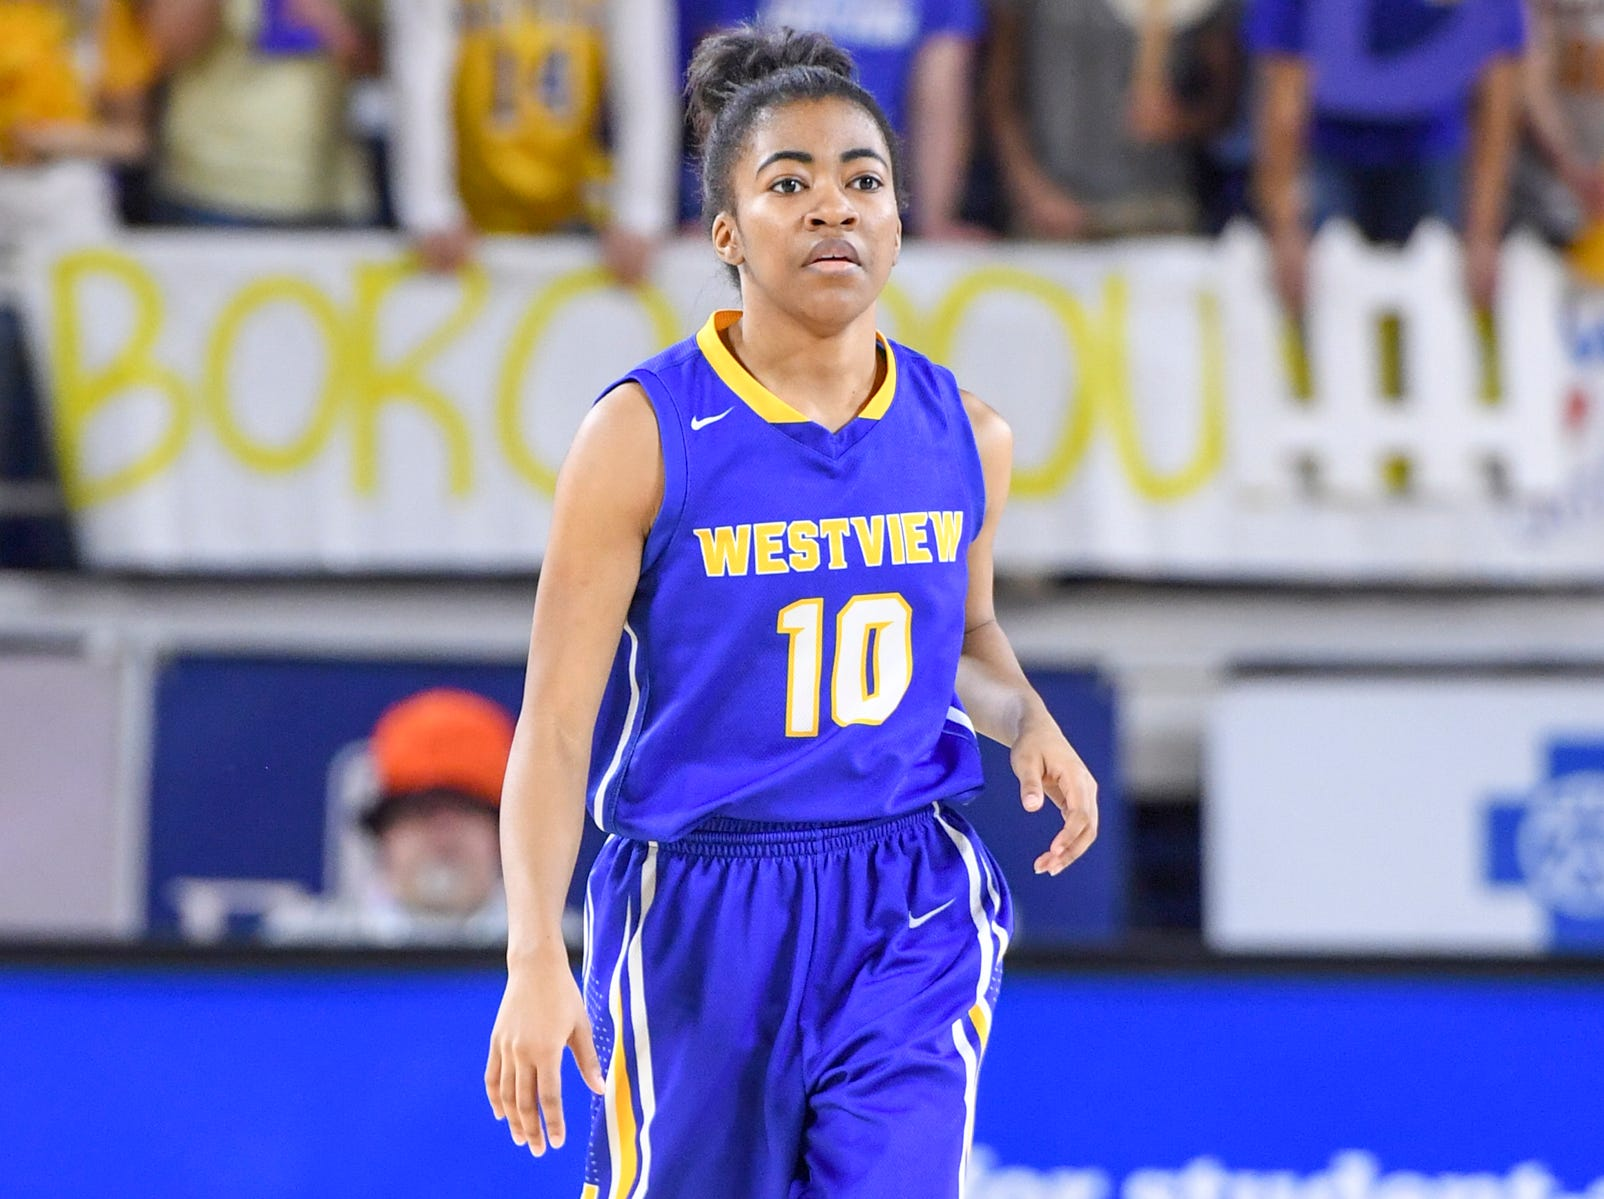 Westview's Zanasha Gadlen (10) scored 6 points in the first half during their Class A semifinal game against Marshall County, Friday, March 8, 2019, in Murfreesboro.